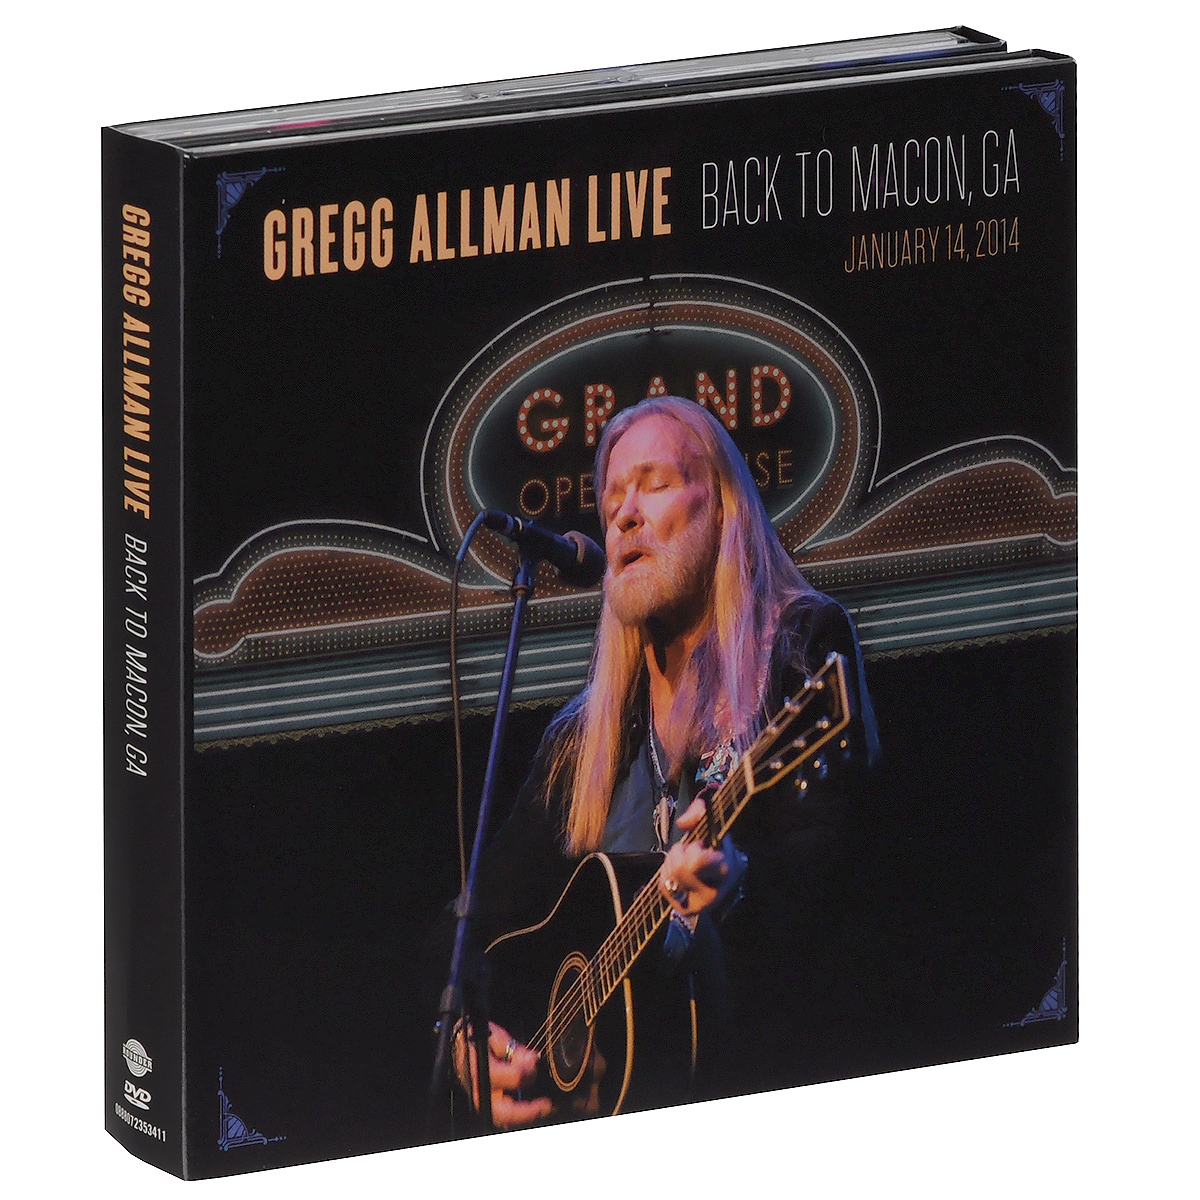 Грегг Оллмен Gregg Allman. Live: Back To Macon, GA (2 CD + DVD) usb flash drive 16gb iconik танк rb tank 16gb